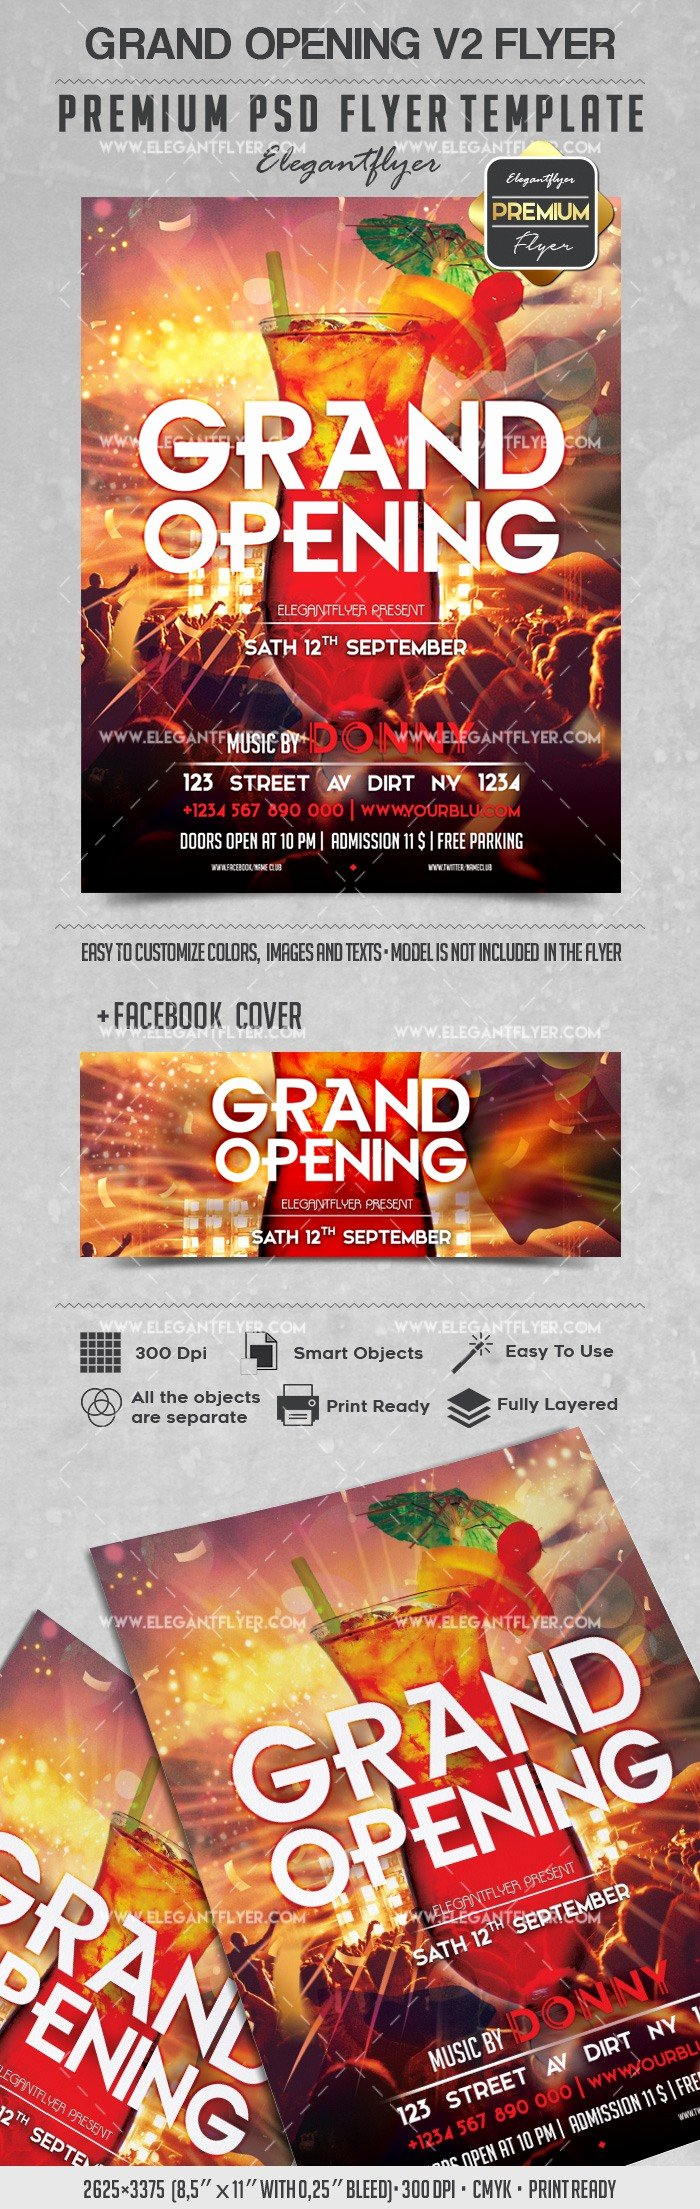 Grand Opening Flyer Template Beautiful Grand Opening V2 – Flyer Psd Template – by Elegantflyer